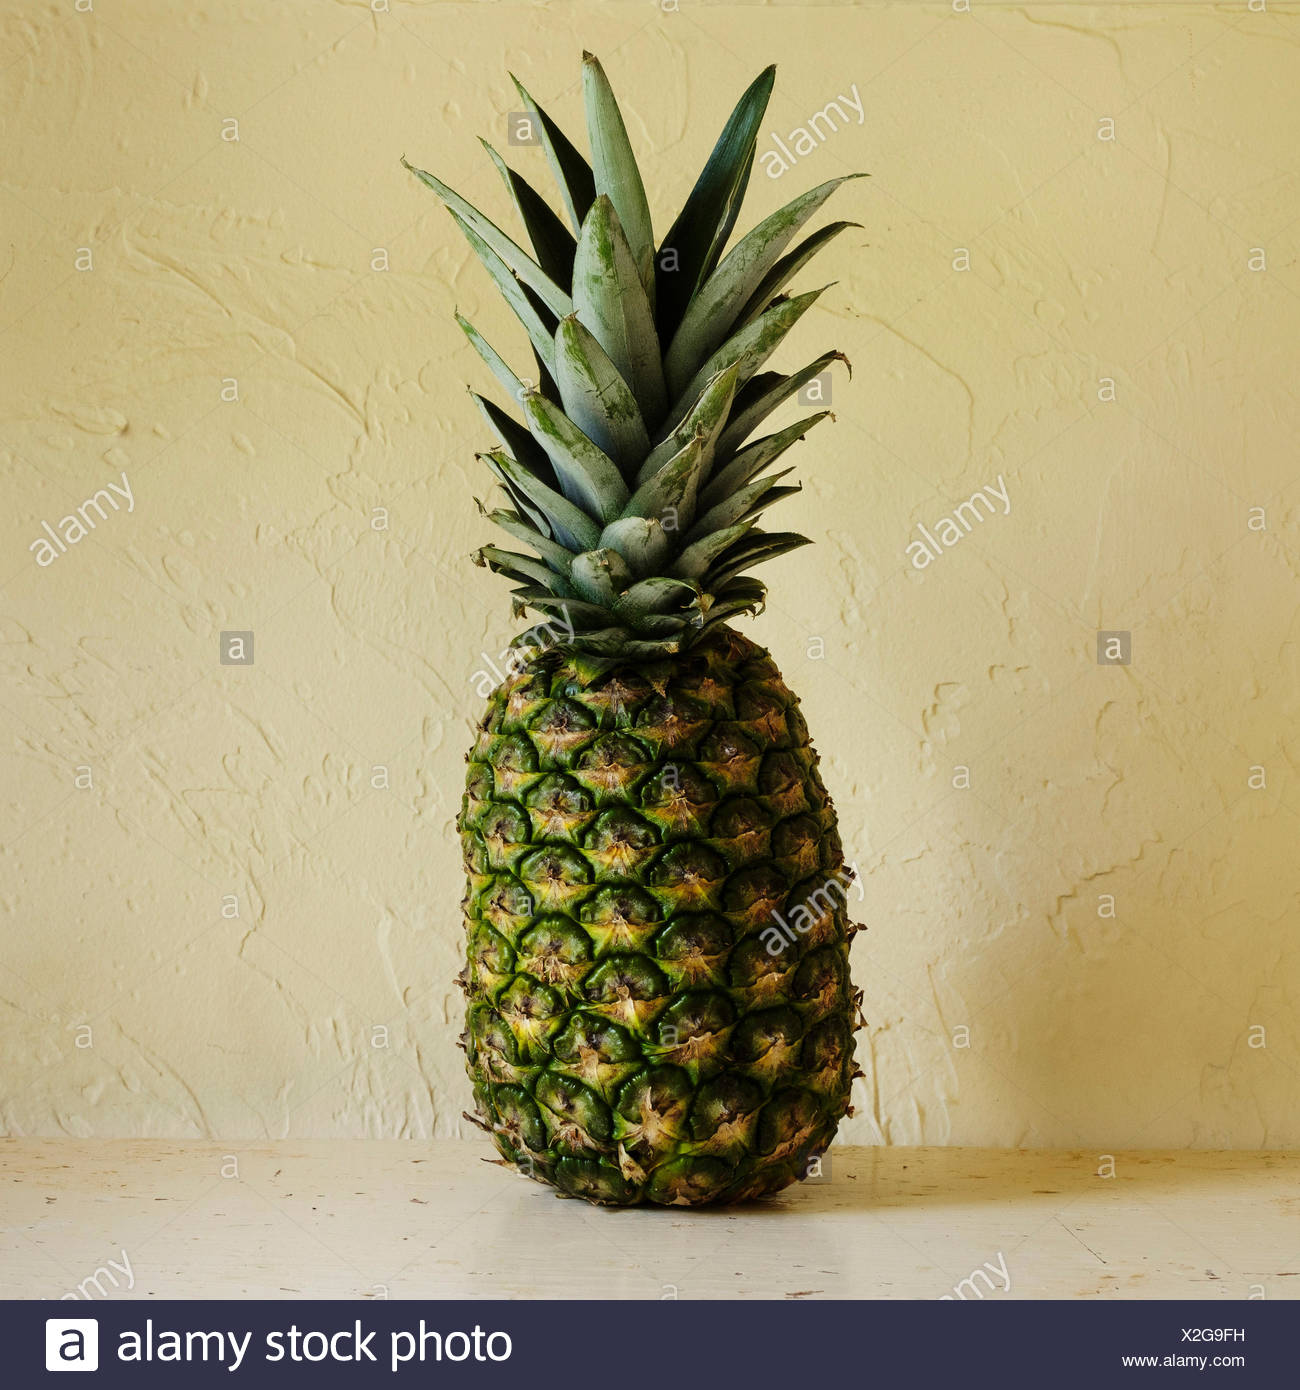 Fresh pineapple against textured wall - Stock Image